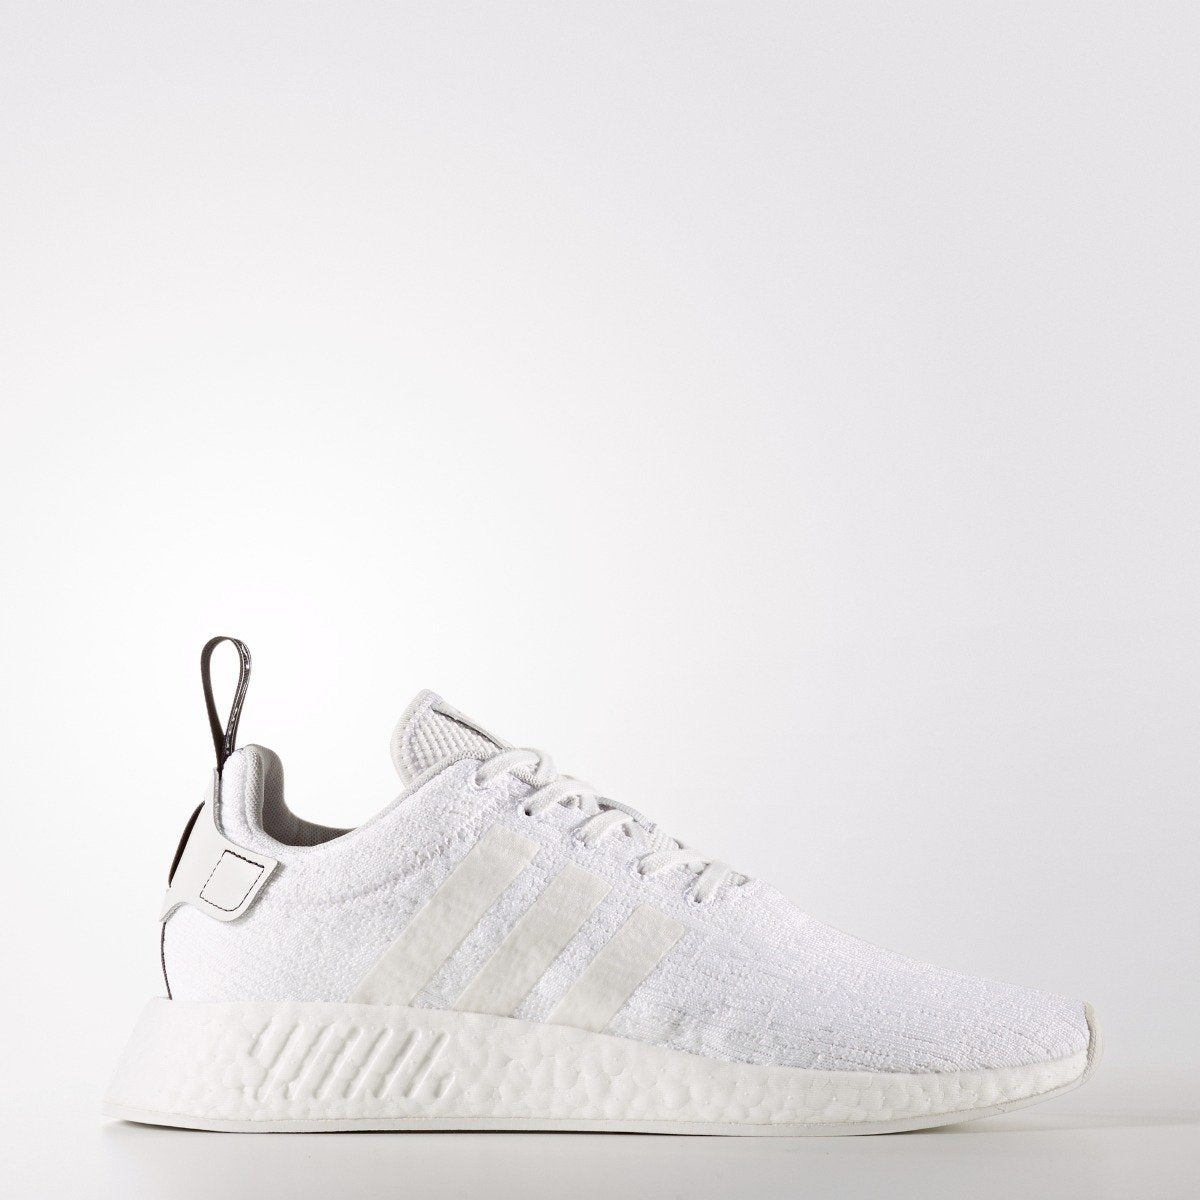 new style 5b503 b5018 Men's adidas Originals NMD_R2 Shoes Crystal White BY9914 ...